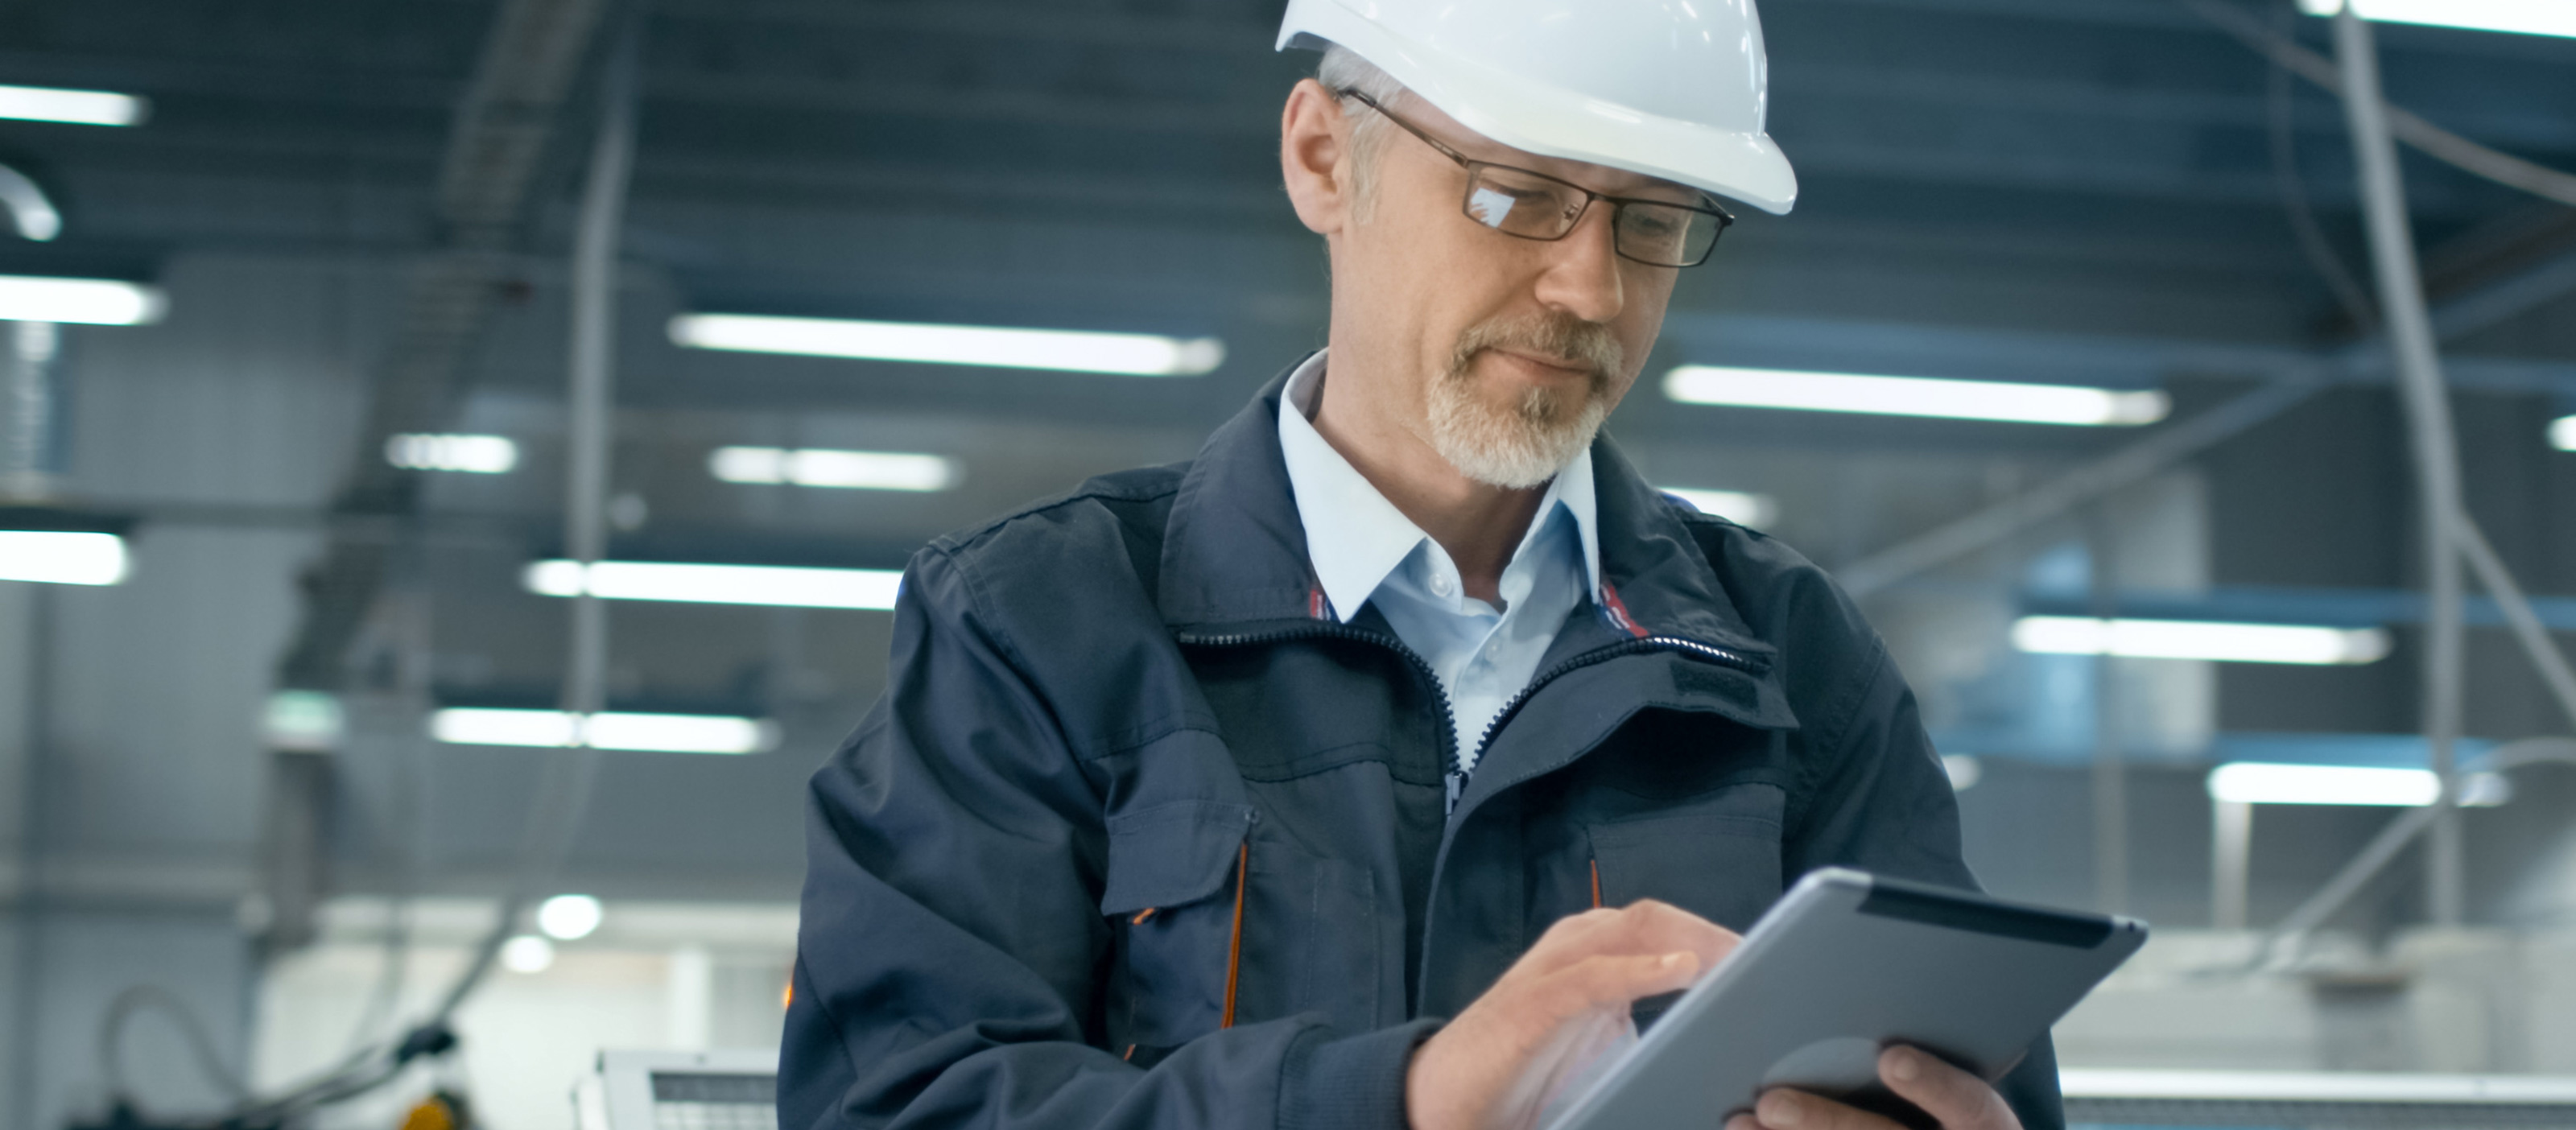 Plant engineer using HMI/SCADA software in industrial operations